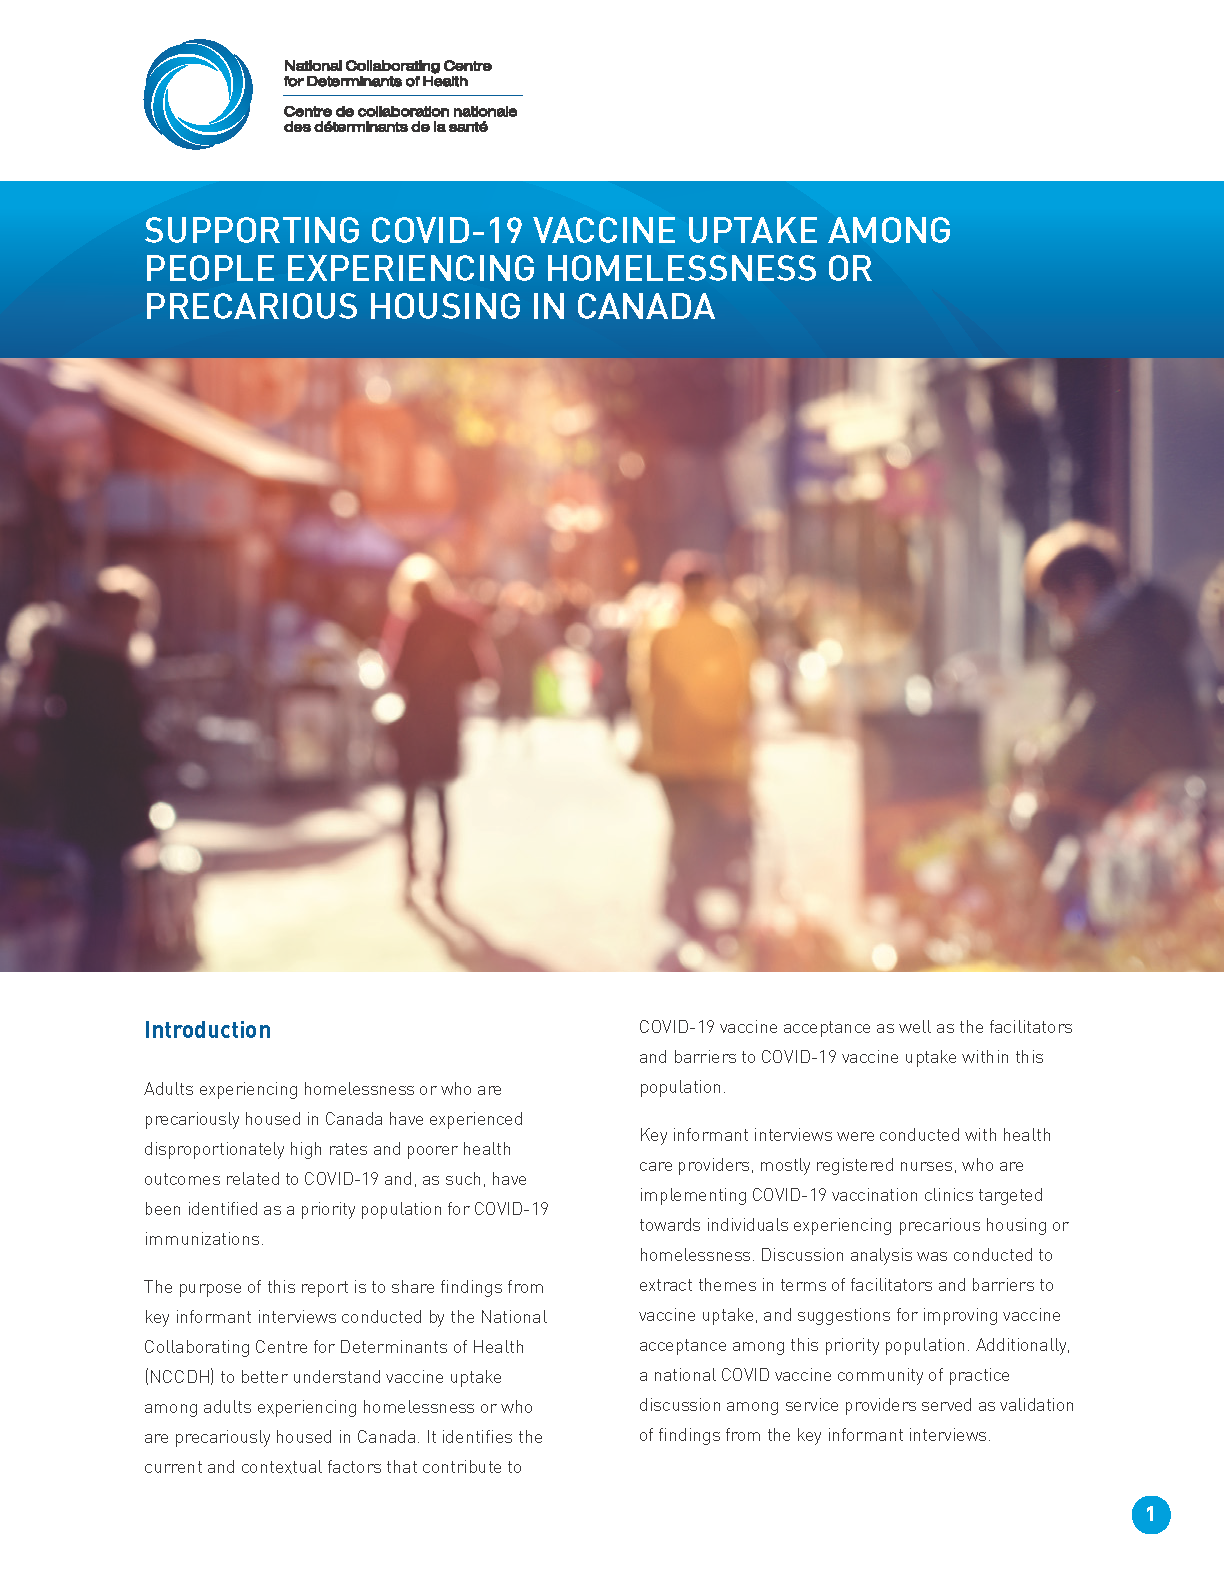 Supporting COVID-19 vaccine uptake among people experiencing homelessness or precarious housing in Canada